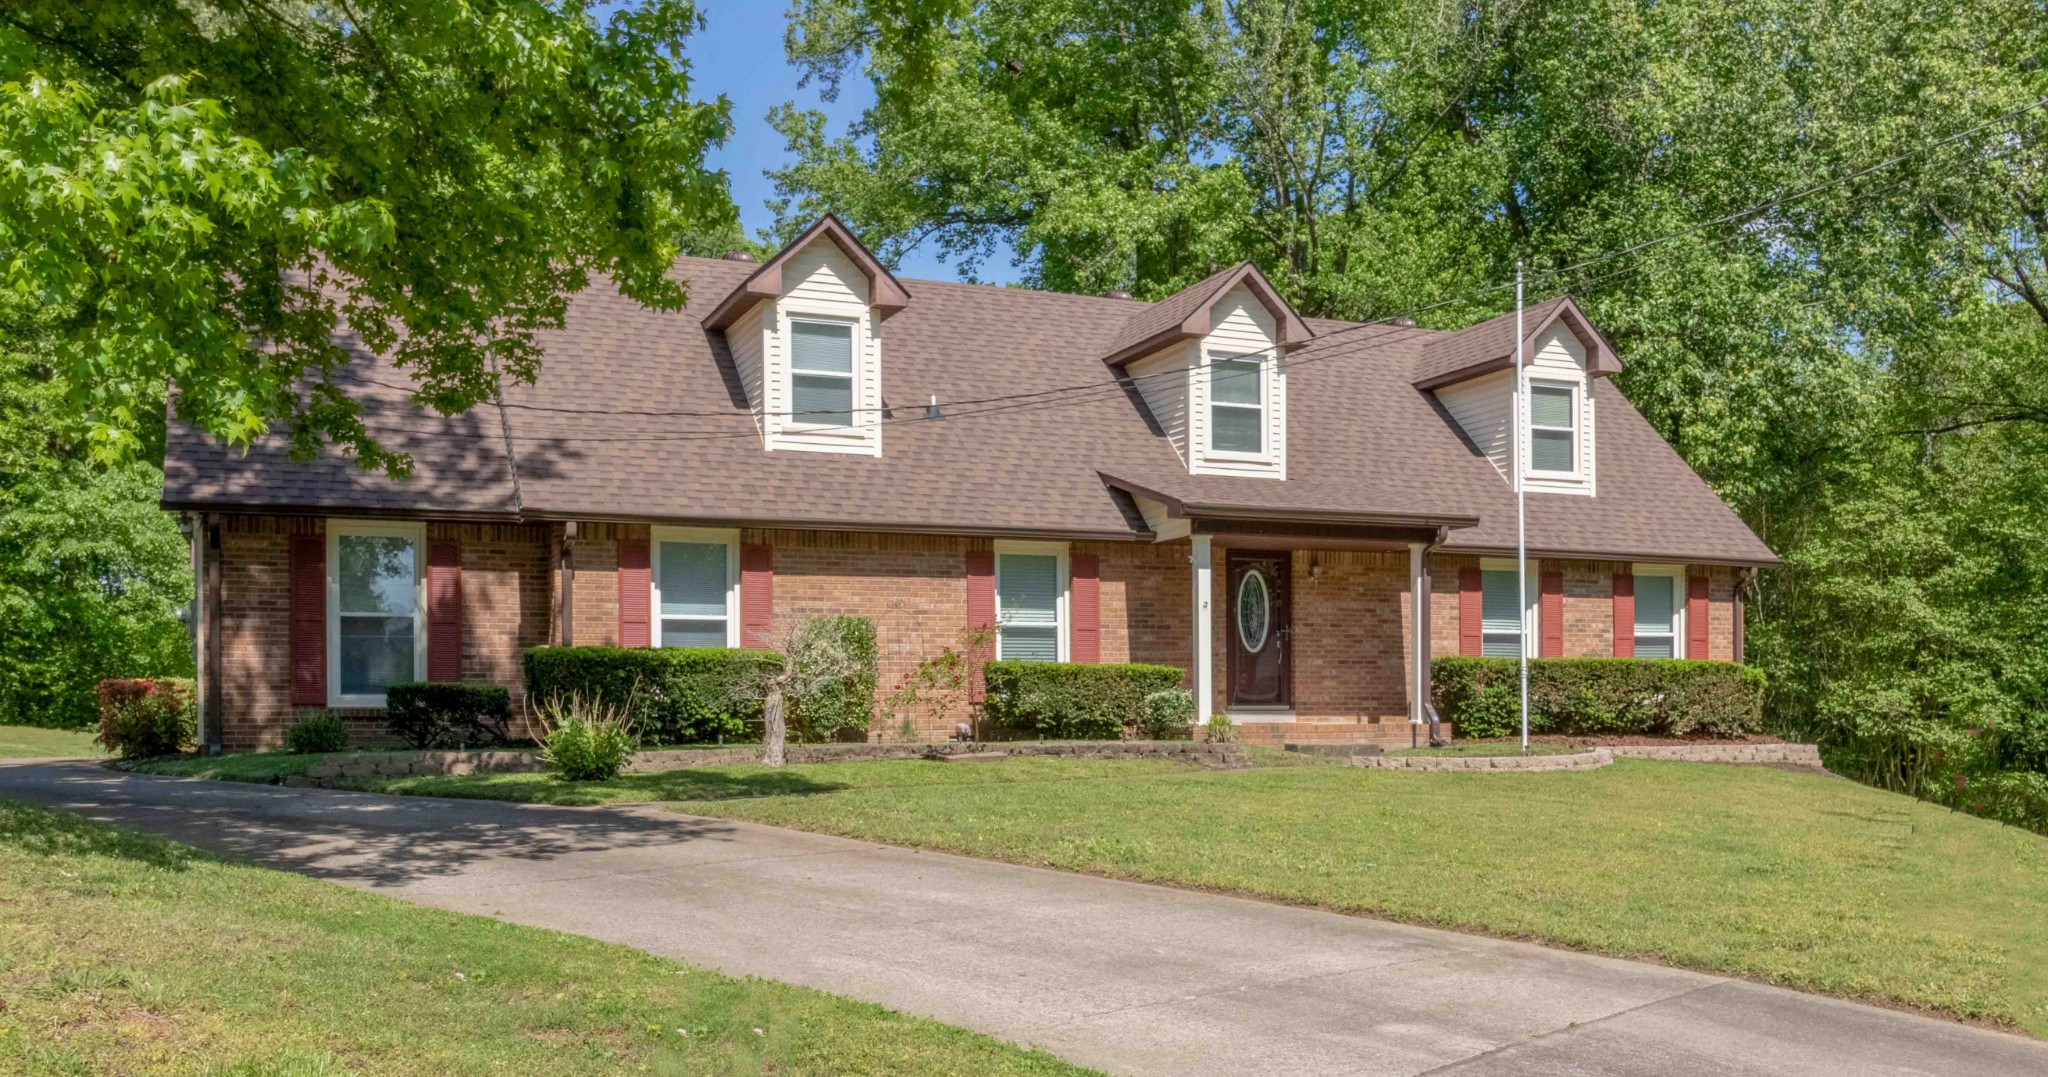 164 KIRBY DRIVE Property Photo - Clarksville, TN real estate listing